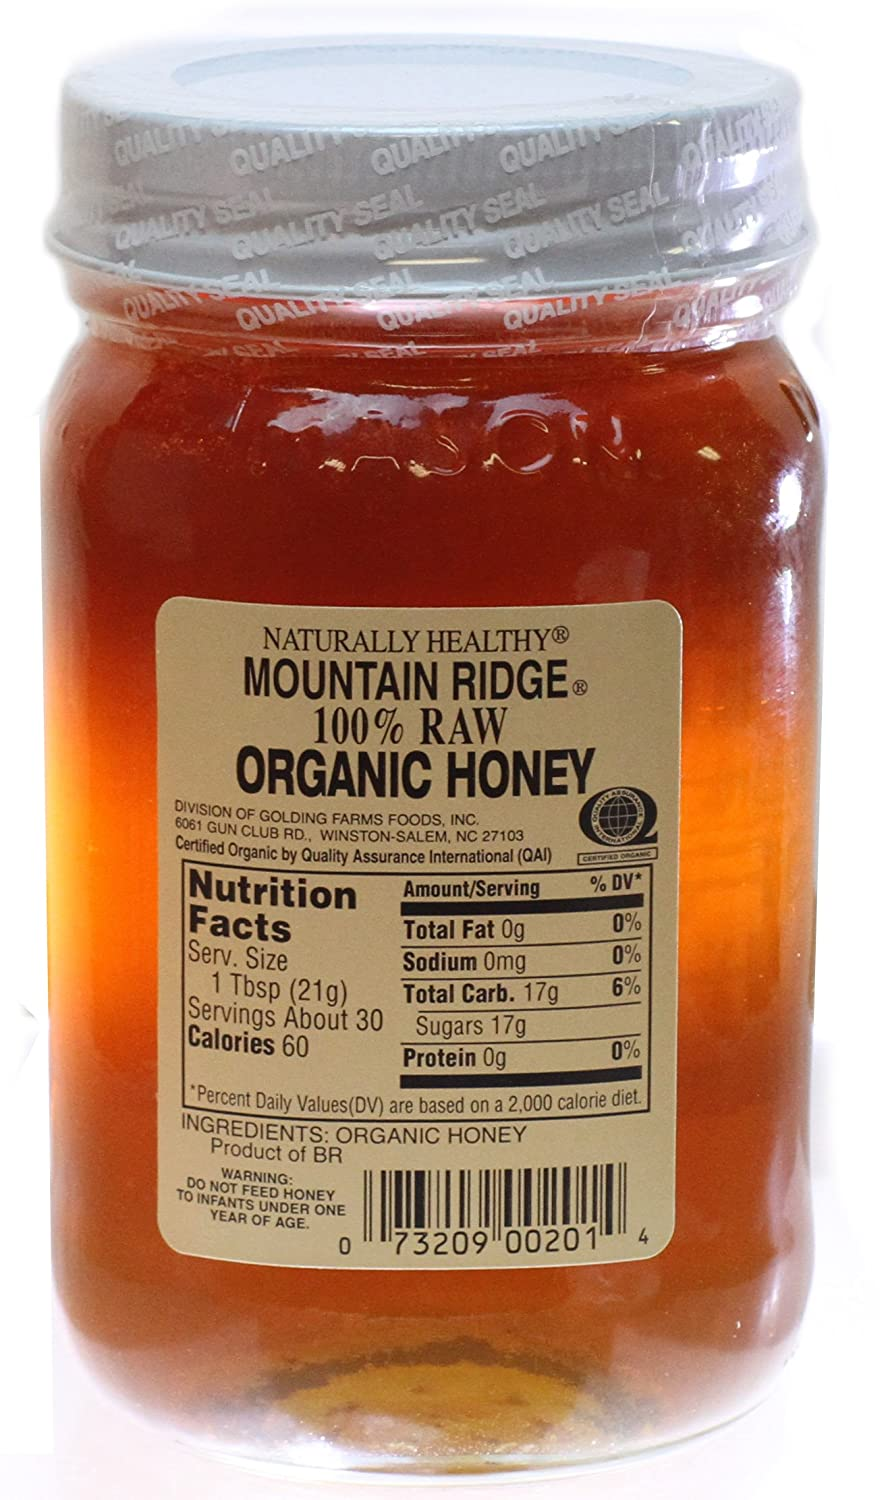 USDA Organic Mountain Ridge Honey - 22 oz of 100% Pure Raw Honey in Glass  Mason Jar